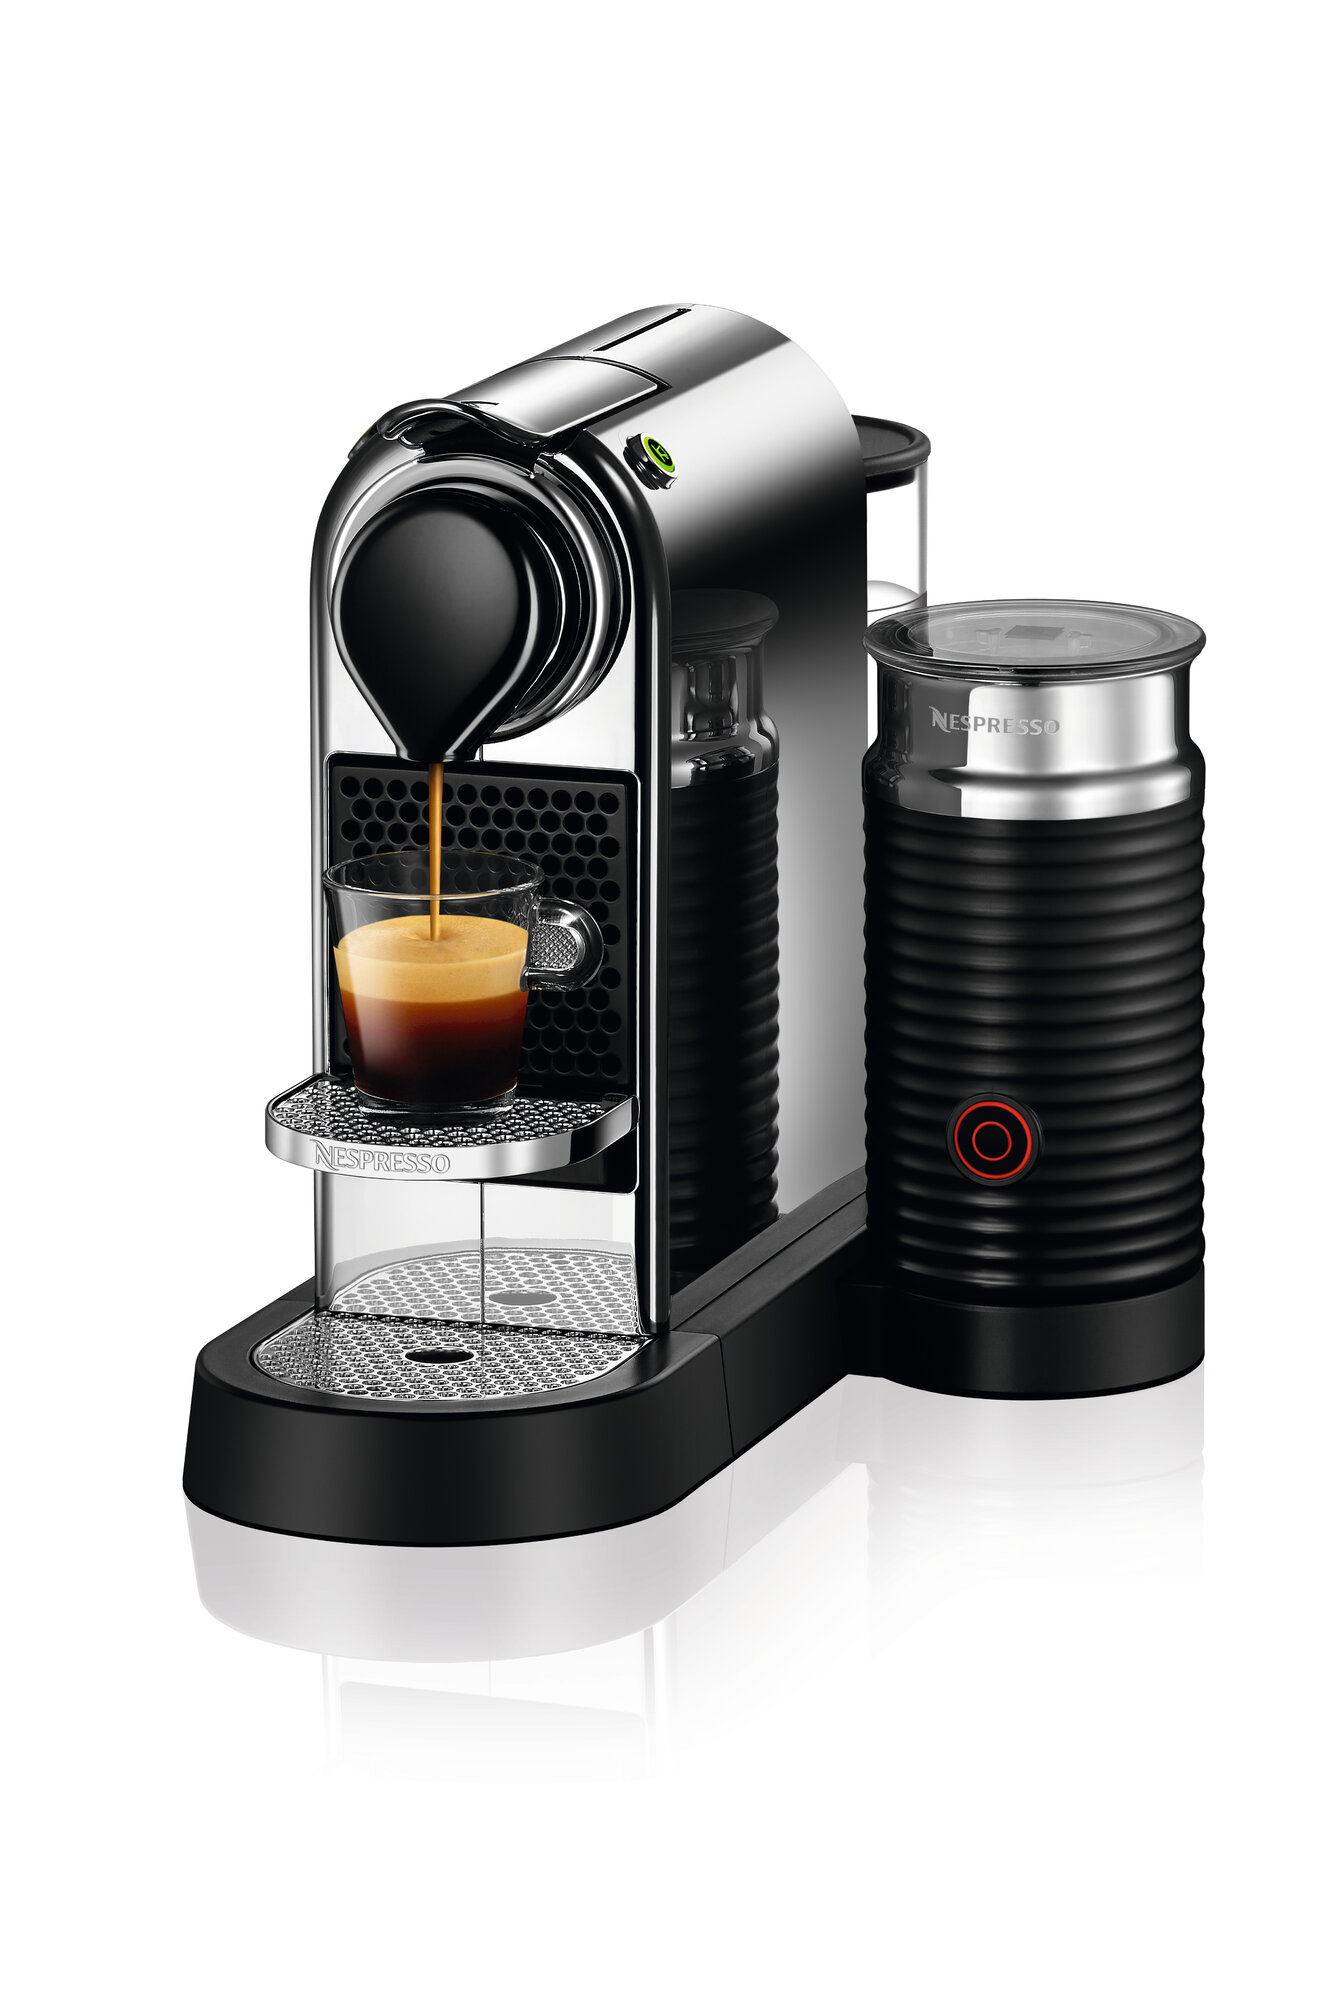 nespresso machine and milk frother